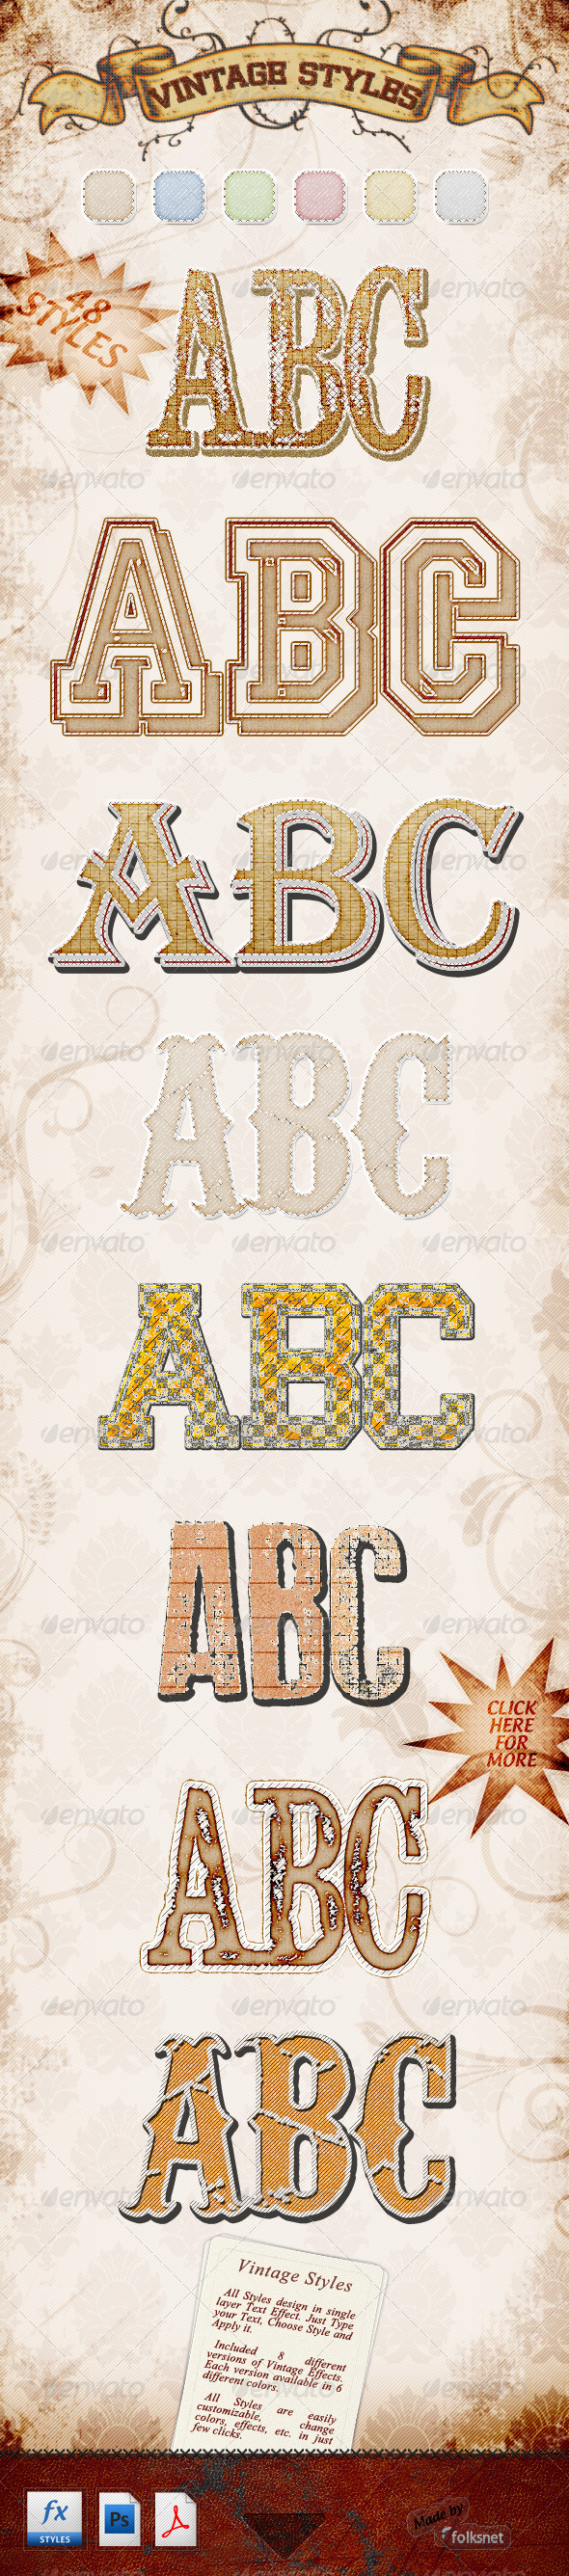 GraphicRiver Vintage Styles 757929